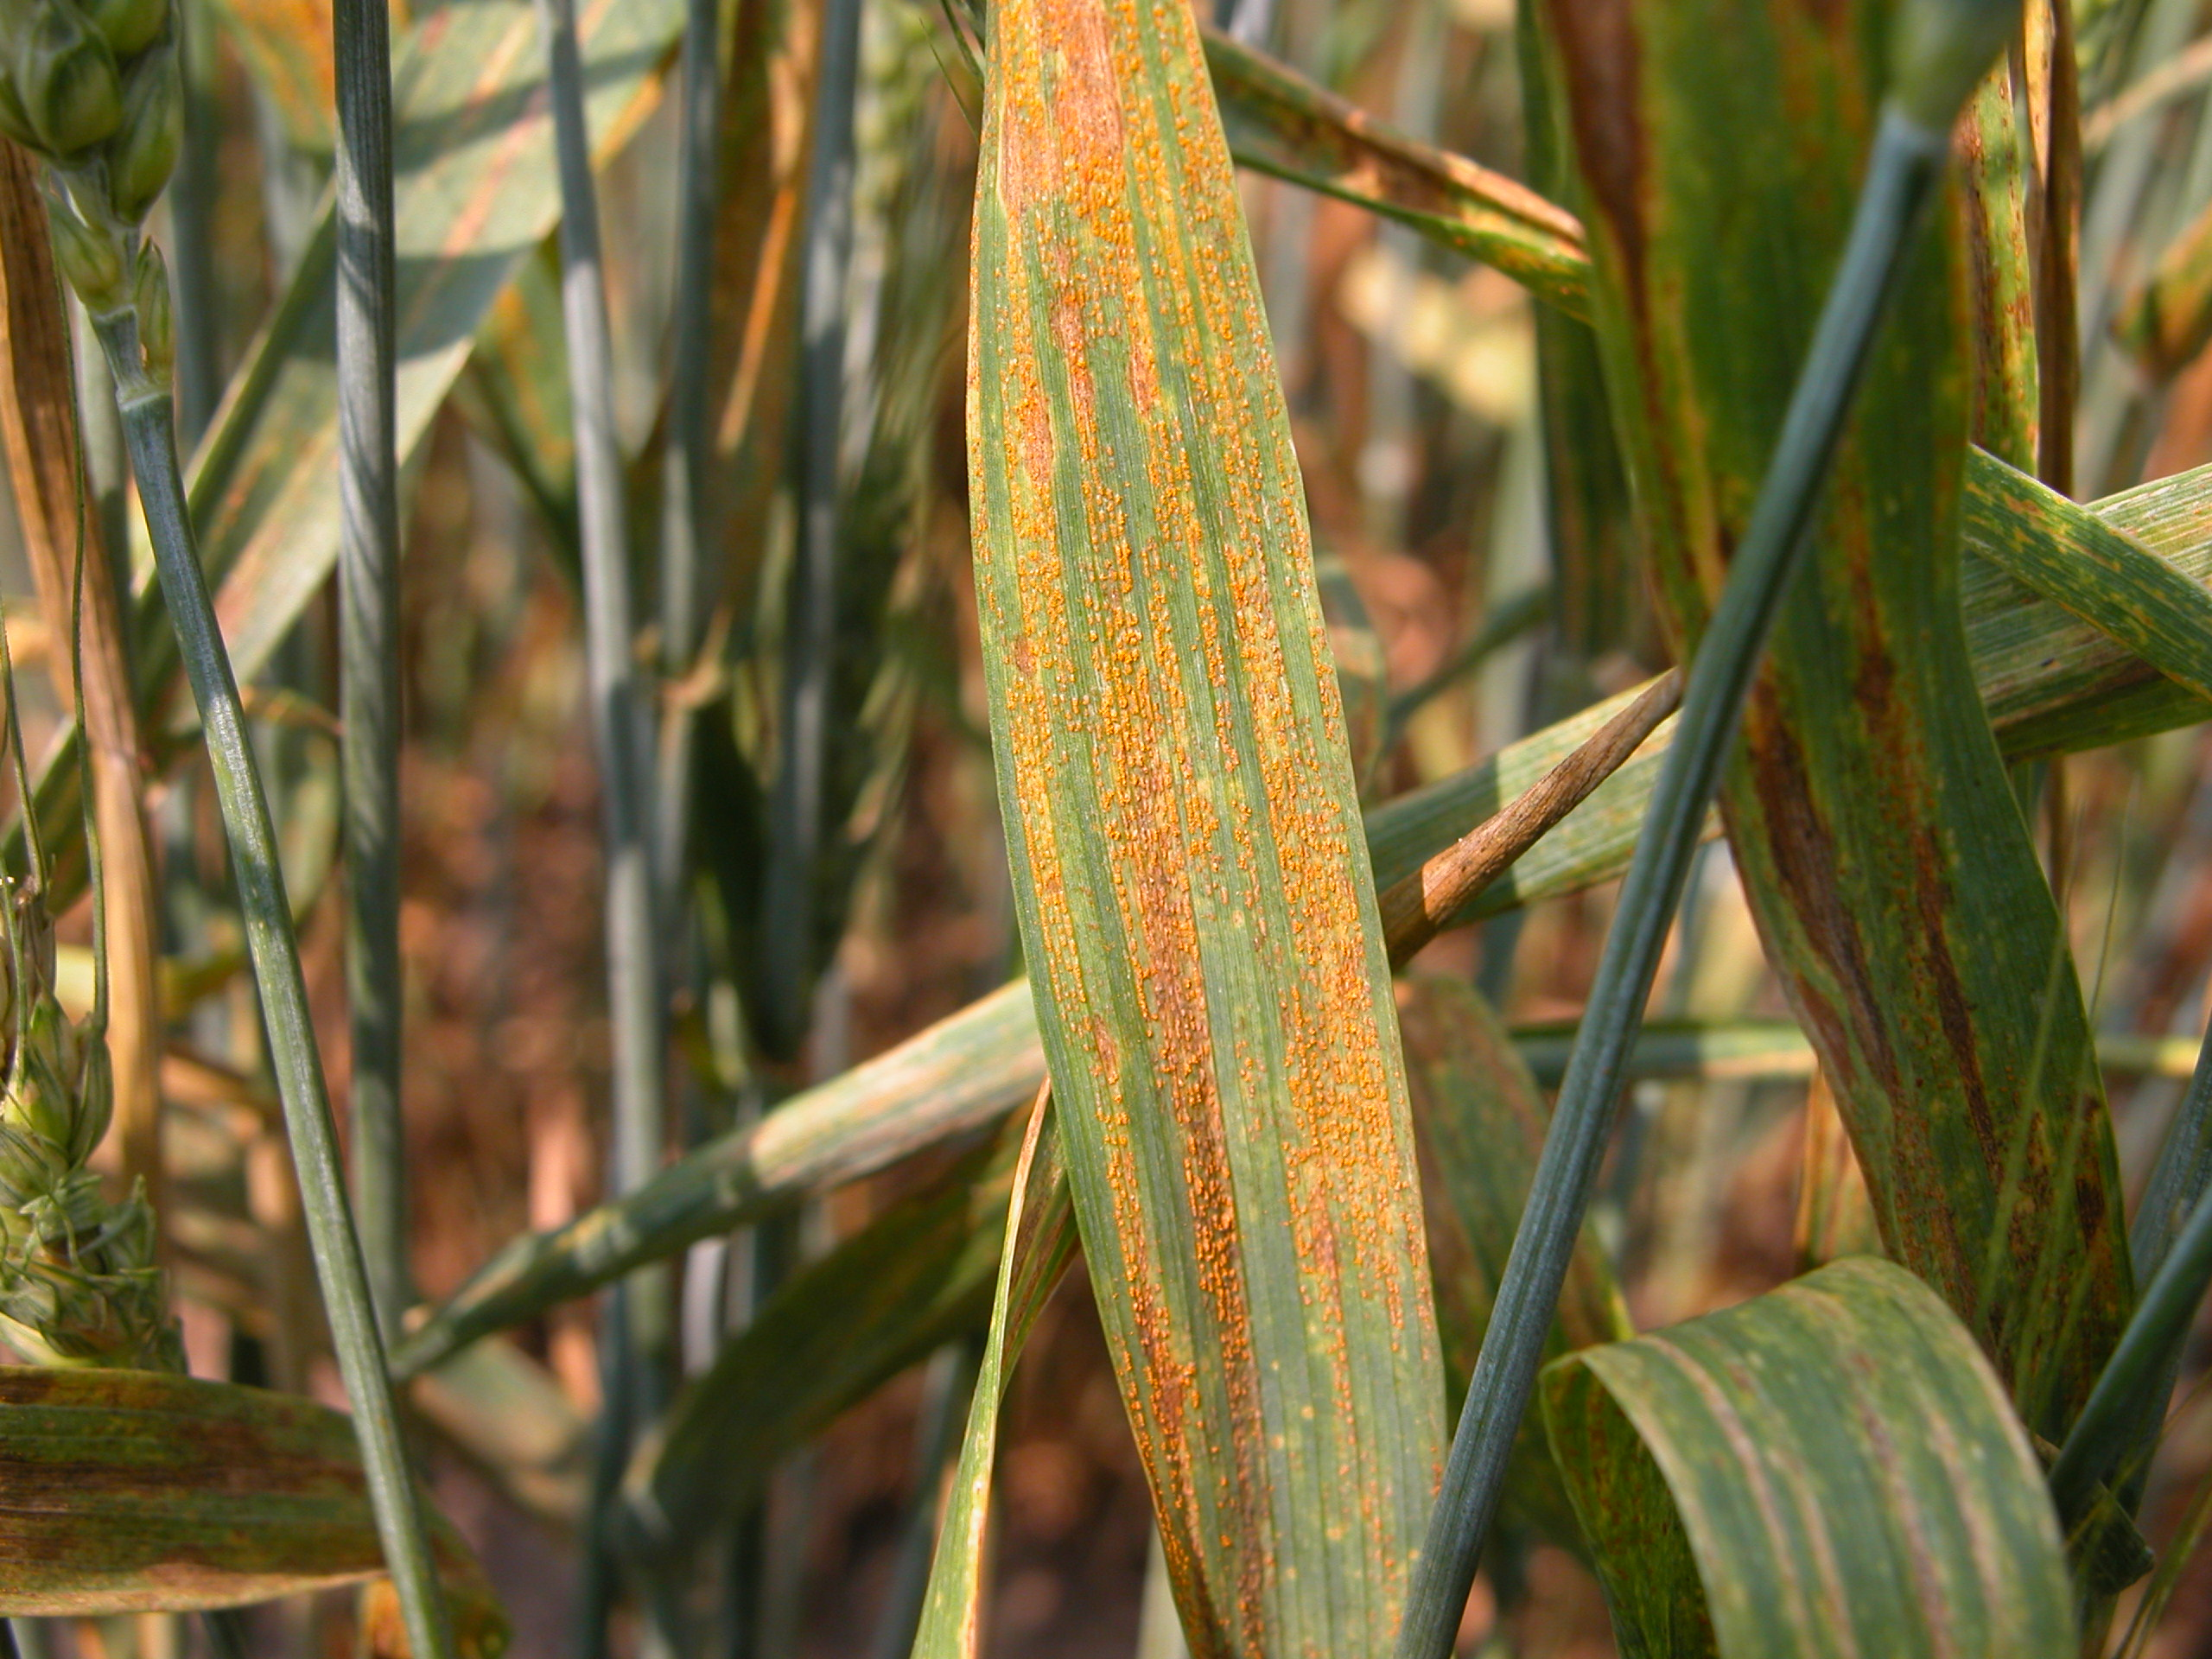 Stripe rust symptoms and signs on leaf tissue of wheat.